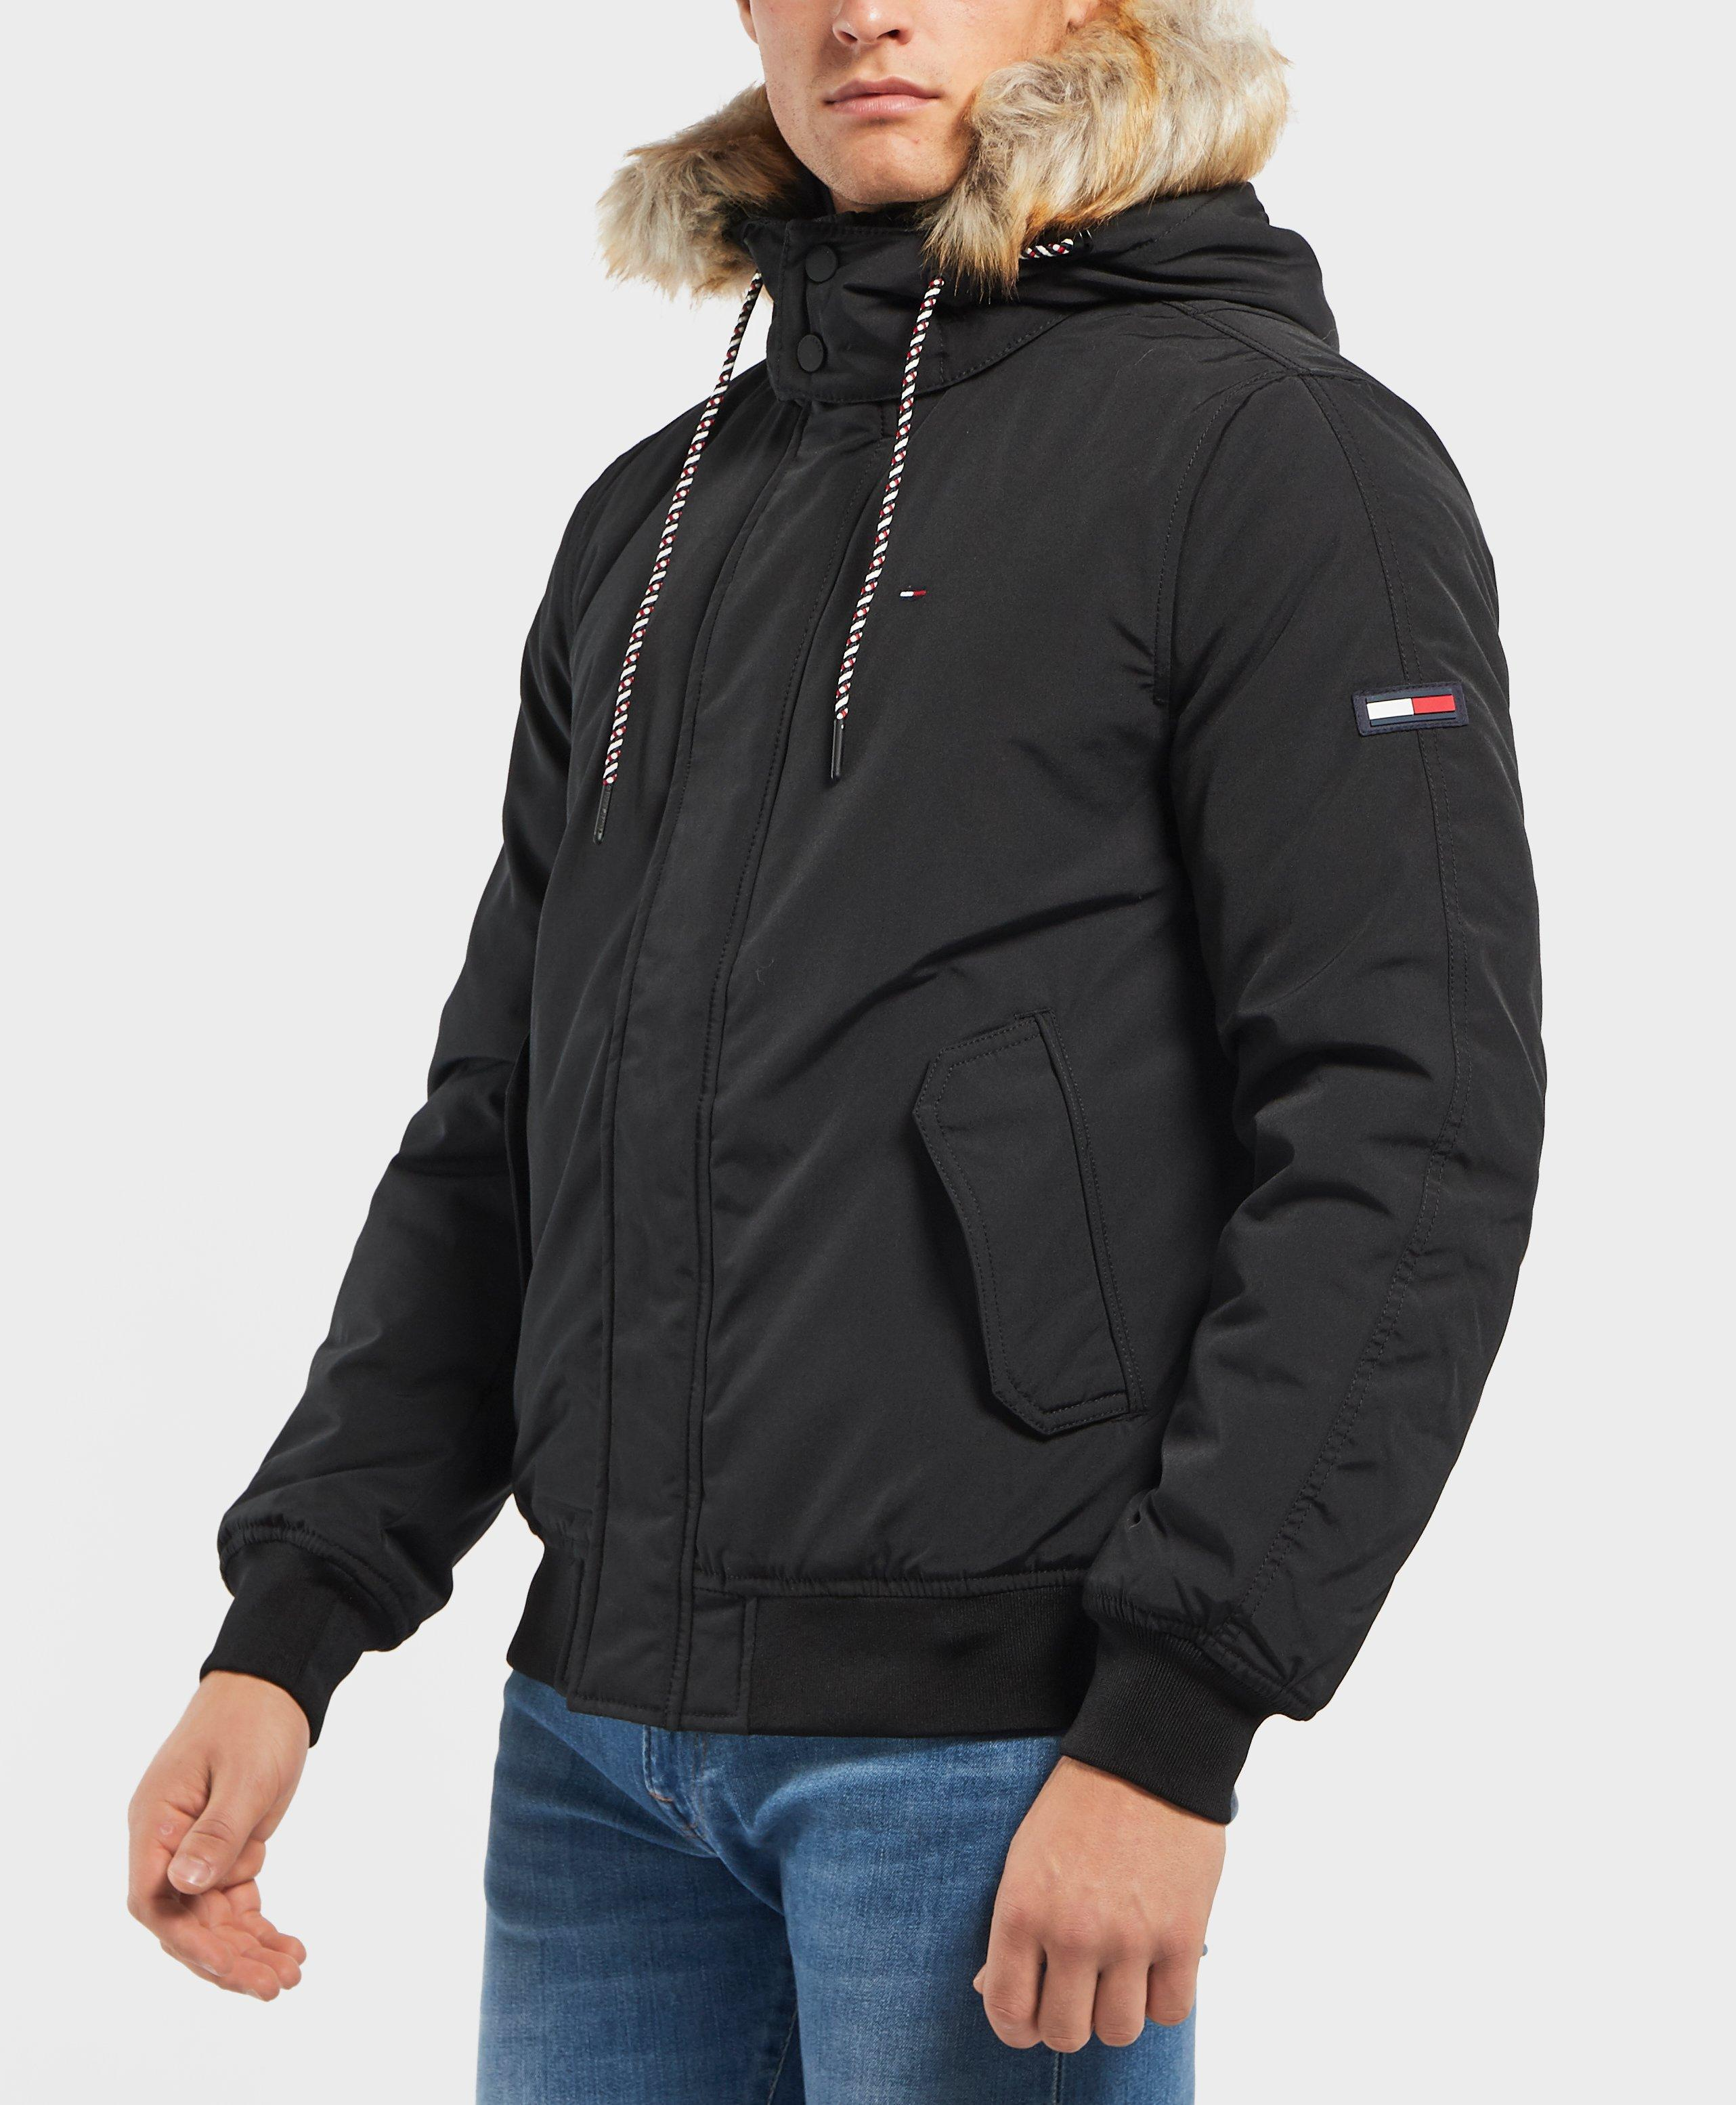 8f498ab67 Tommy Hilfiger Tech Padded Bomber Jacket in Black for Men - Lyst